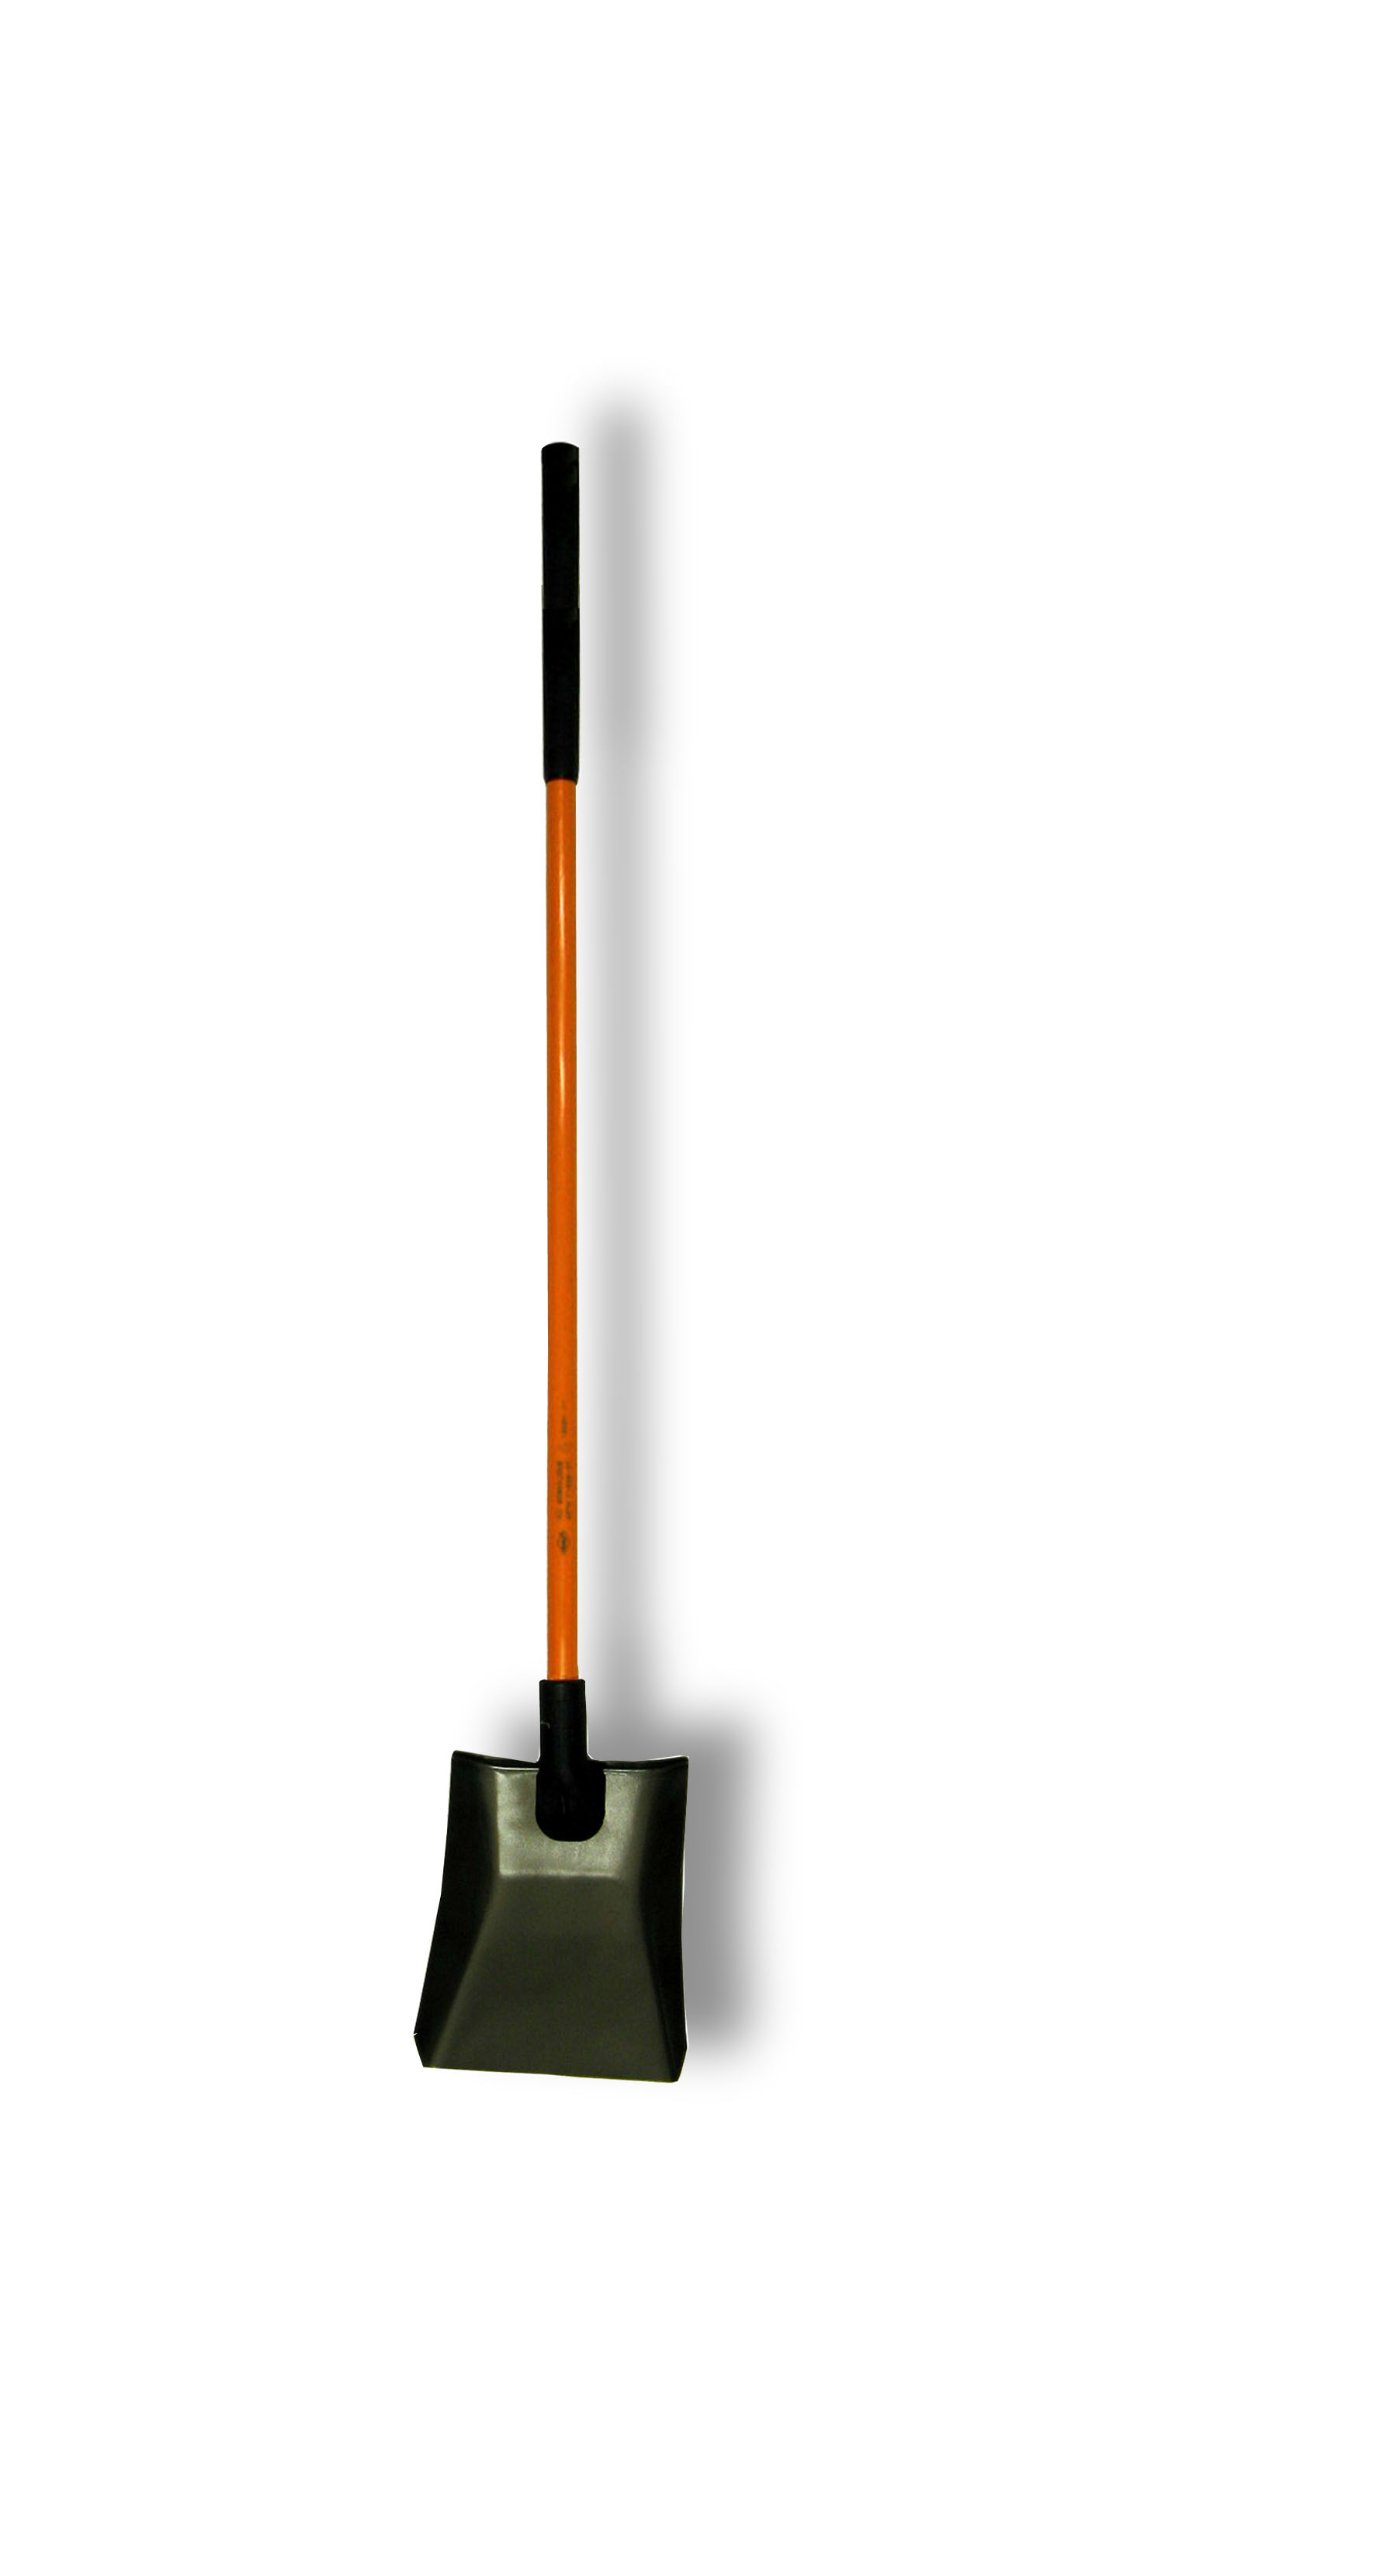 Nupla NC-SP14LPY Power Pylon Square Point Shovel with Heavy-Duty 14 Gauge Solid Back Blade and Butt Grip, 48'' Solid Long Handle by Nupla (Image #1)